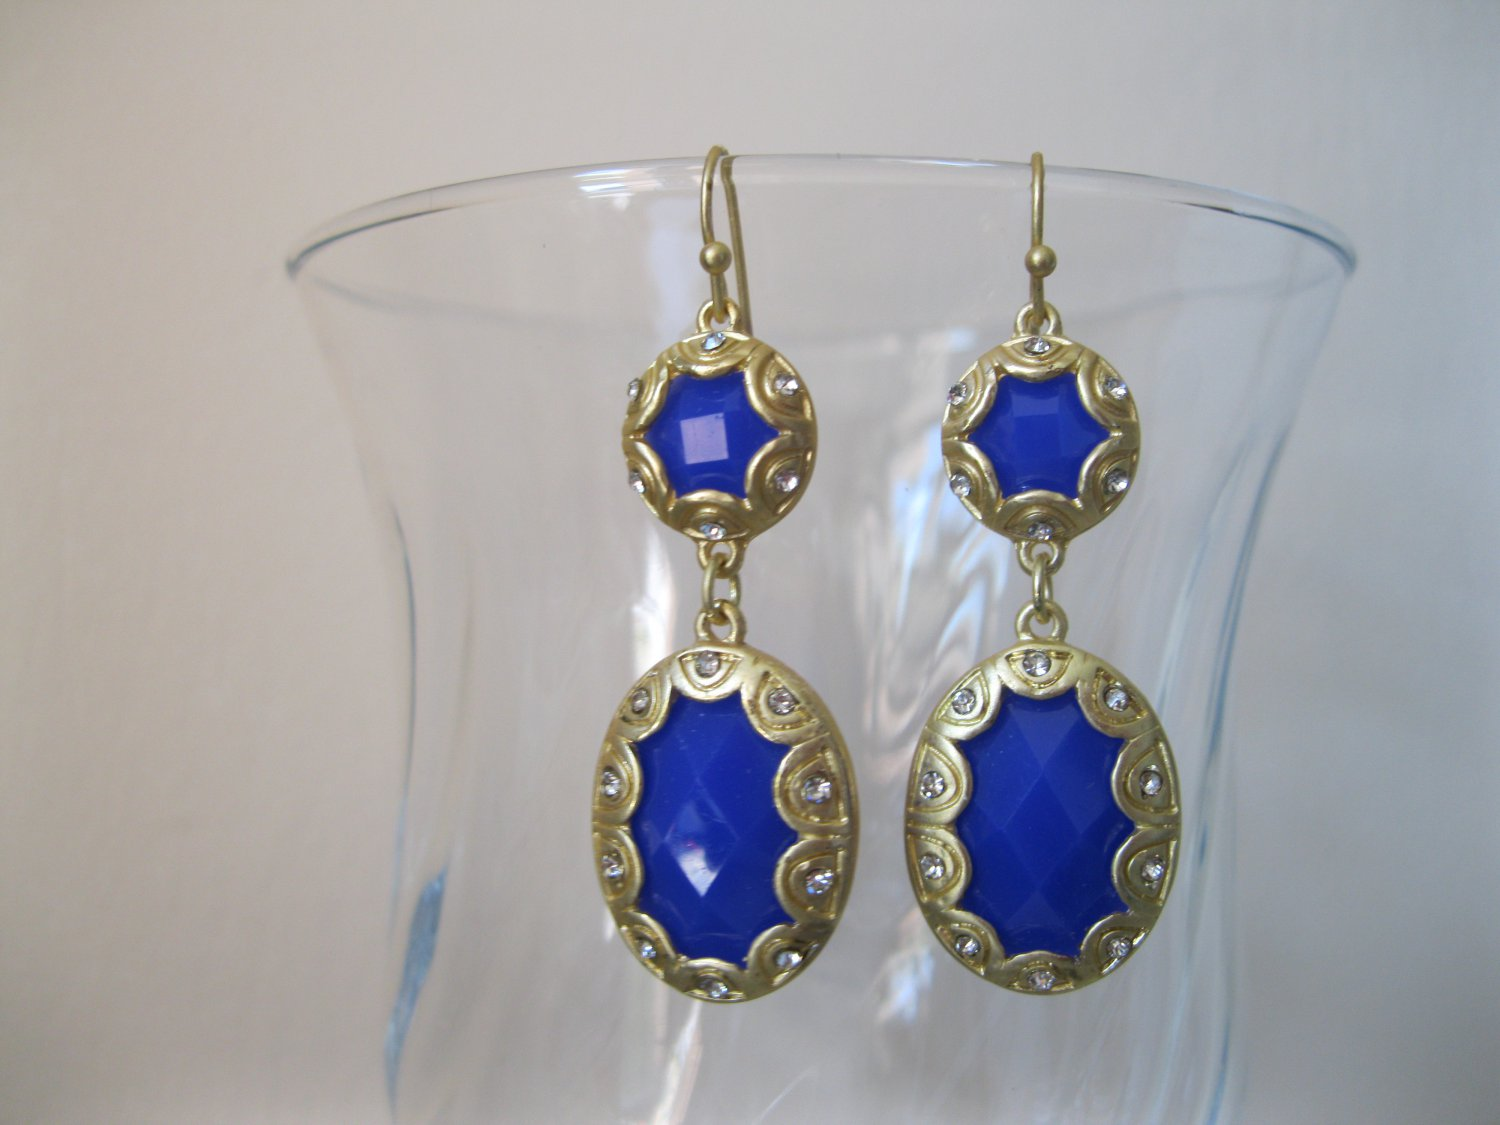 SALE: Trendy royal blue and gold with crystals drop earrings